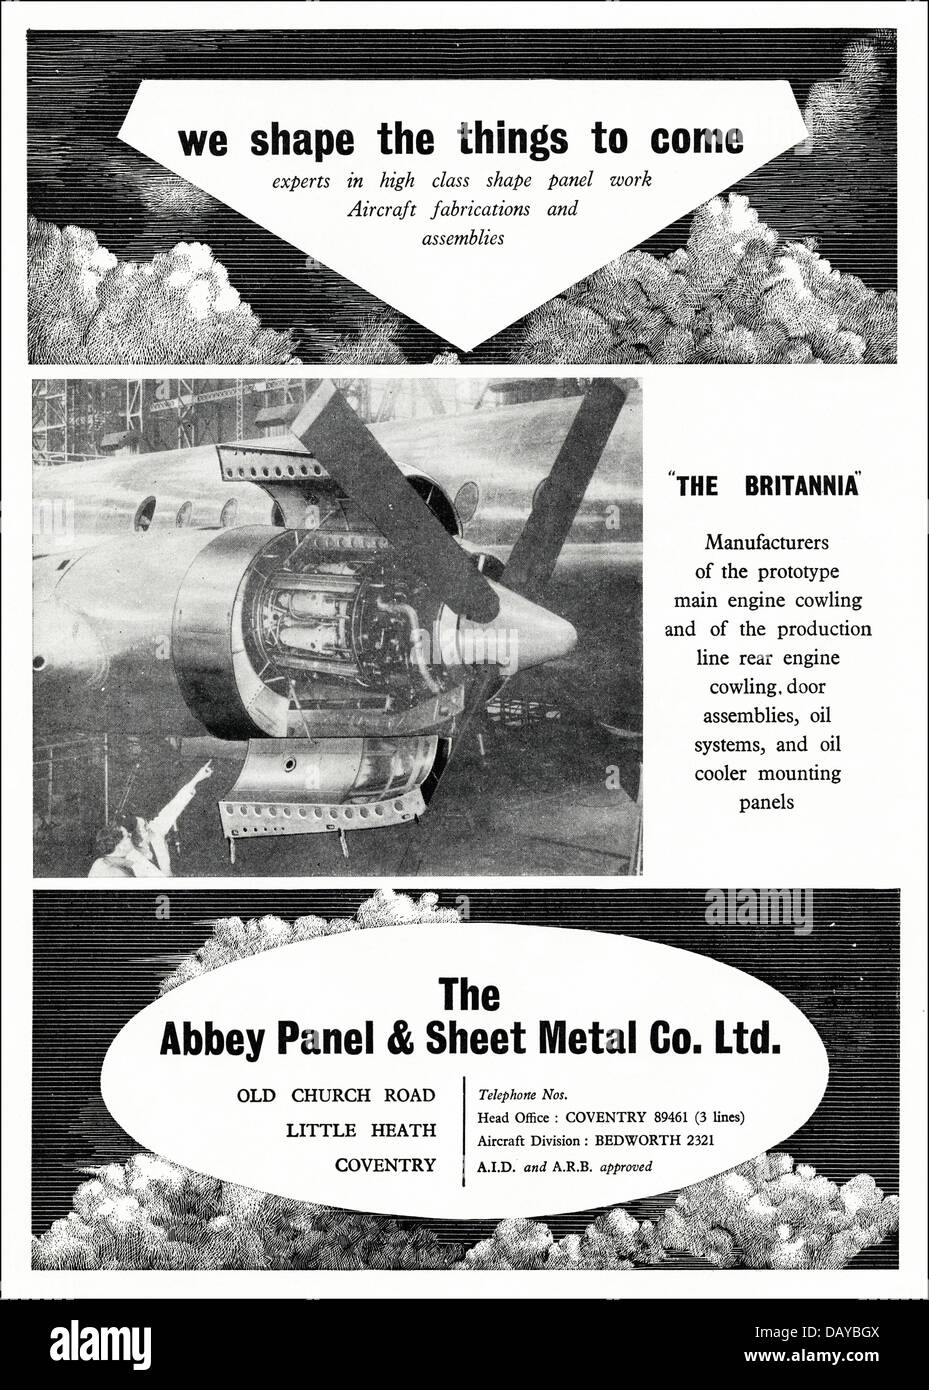 Advert For Aircraft Metal Panels By The Abbey Panel